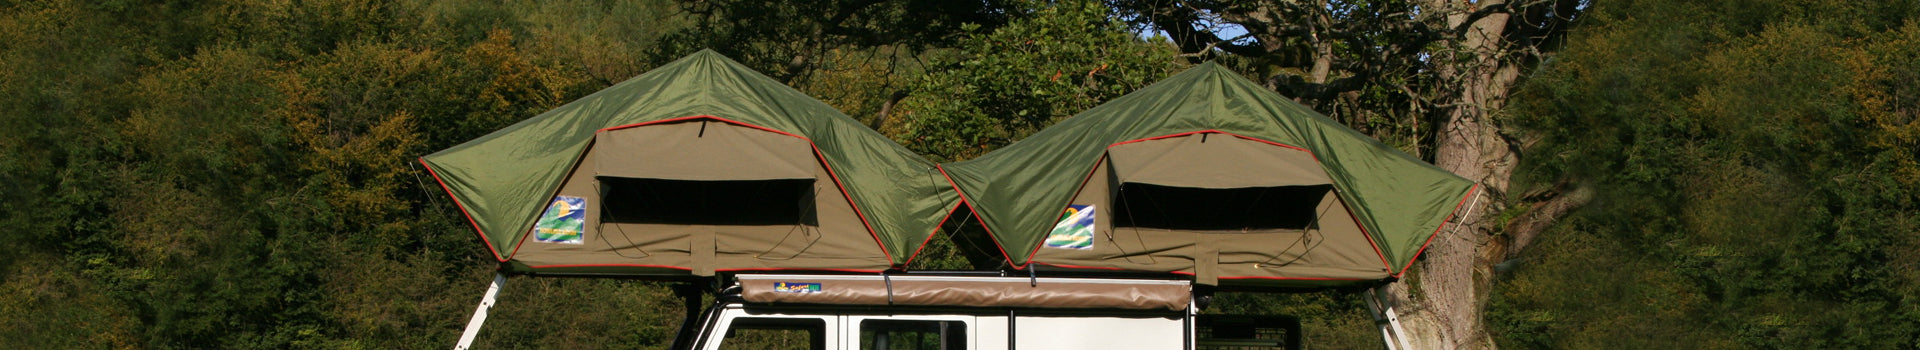 Howling Moon Deluxe Roof Tent